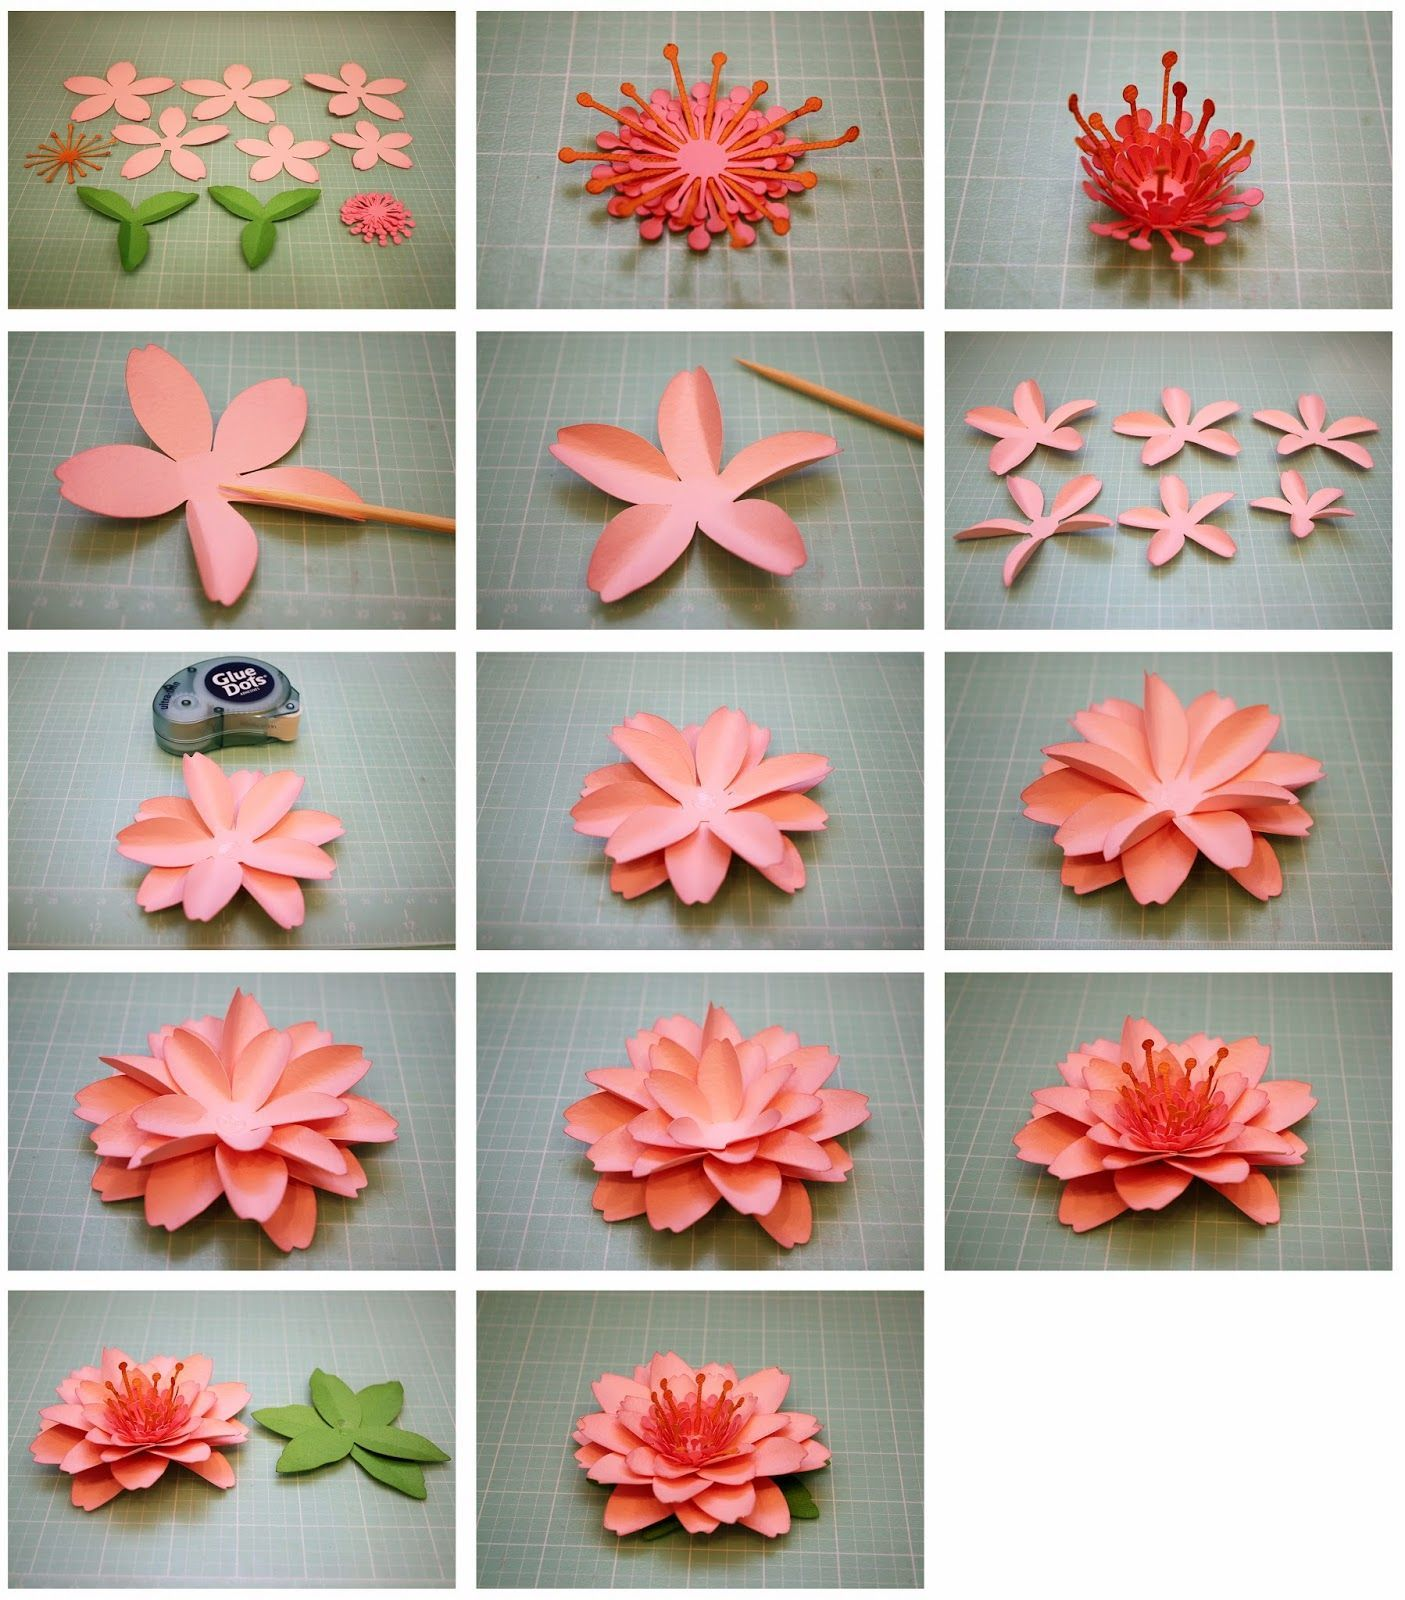 Bits Of Paper Daffodil And Cherry Blossom 3d Paper Flowers